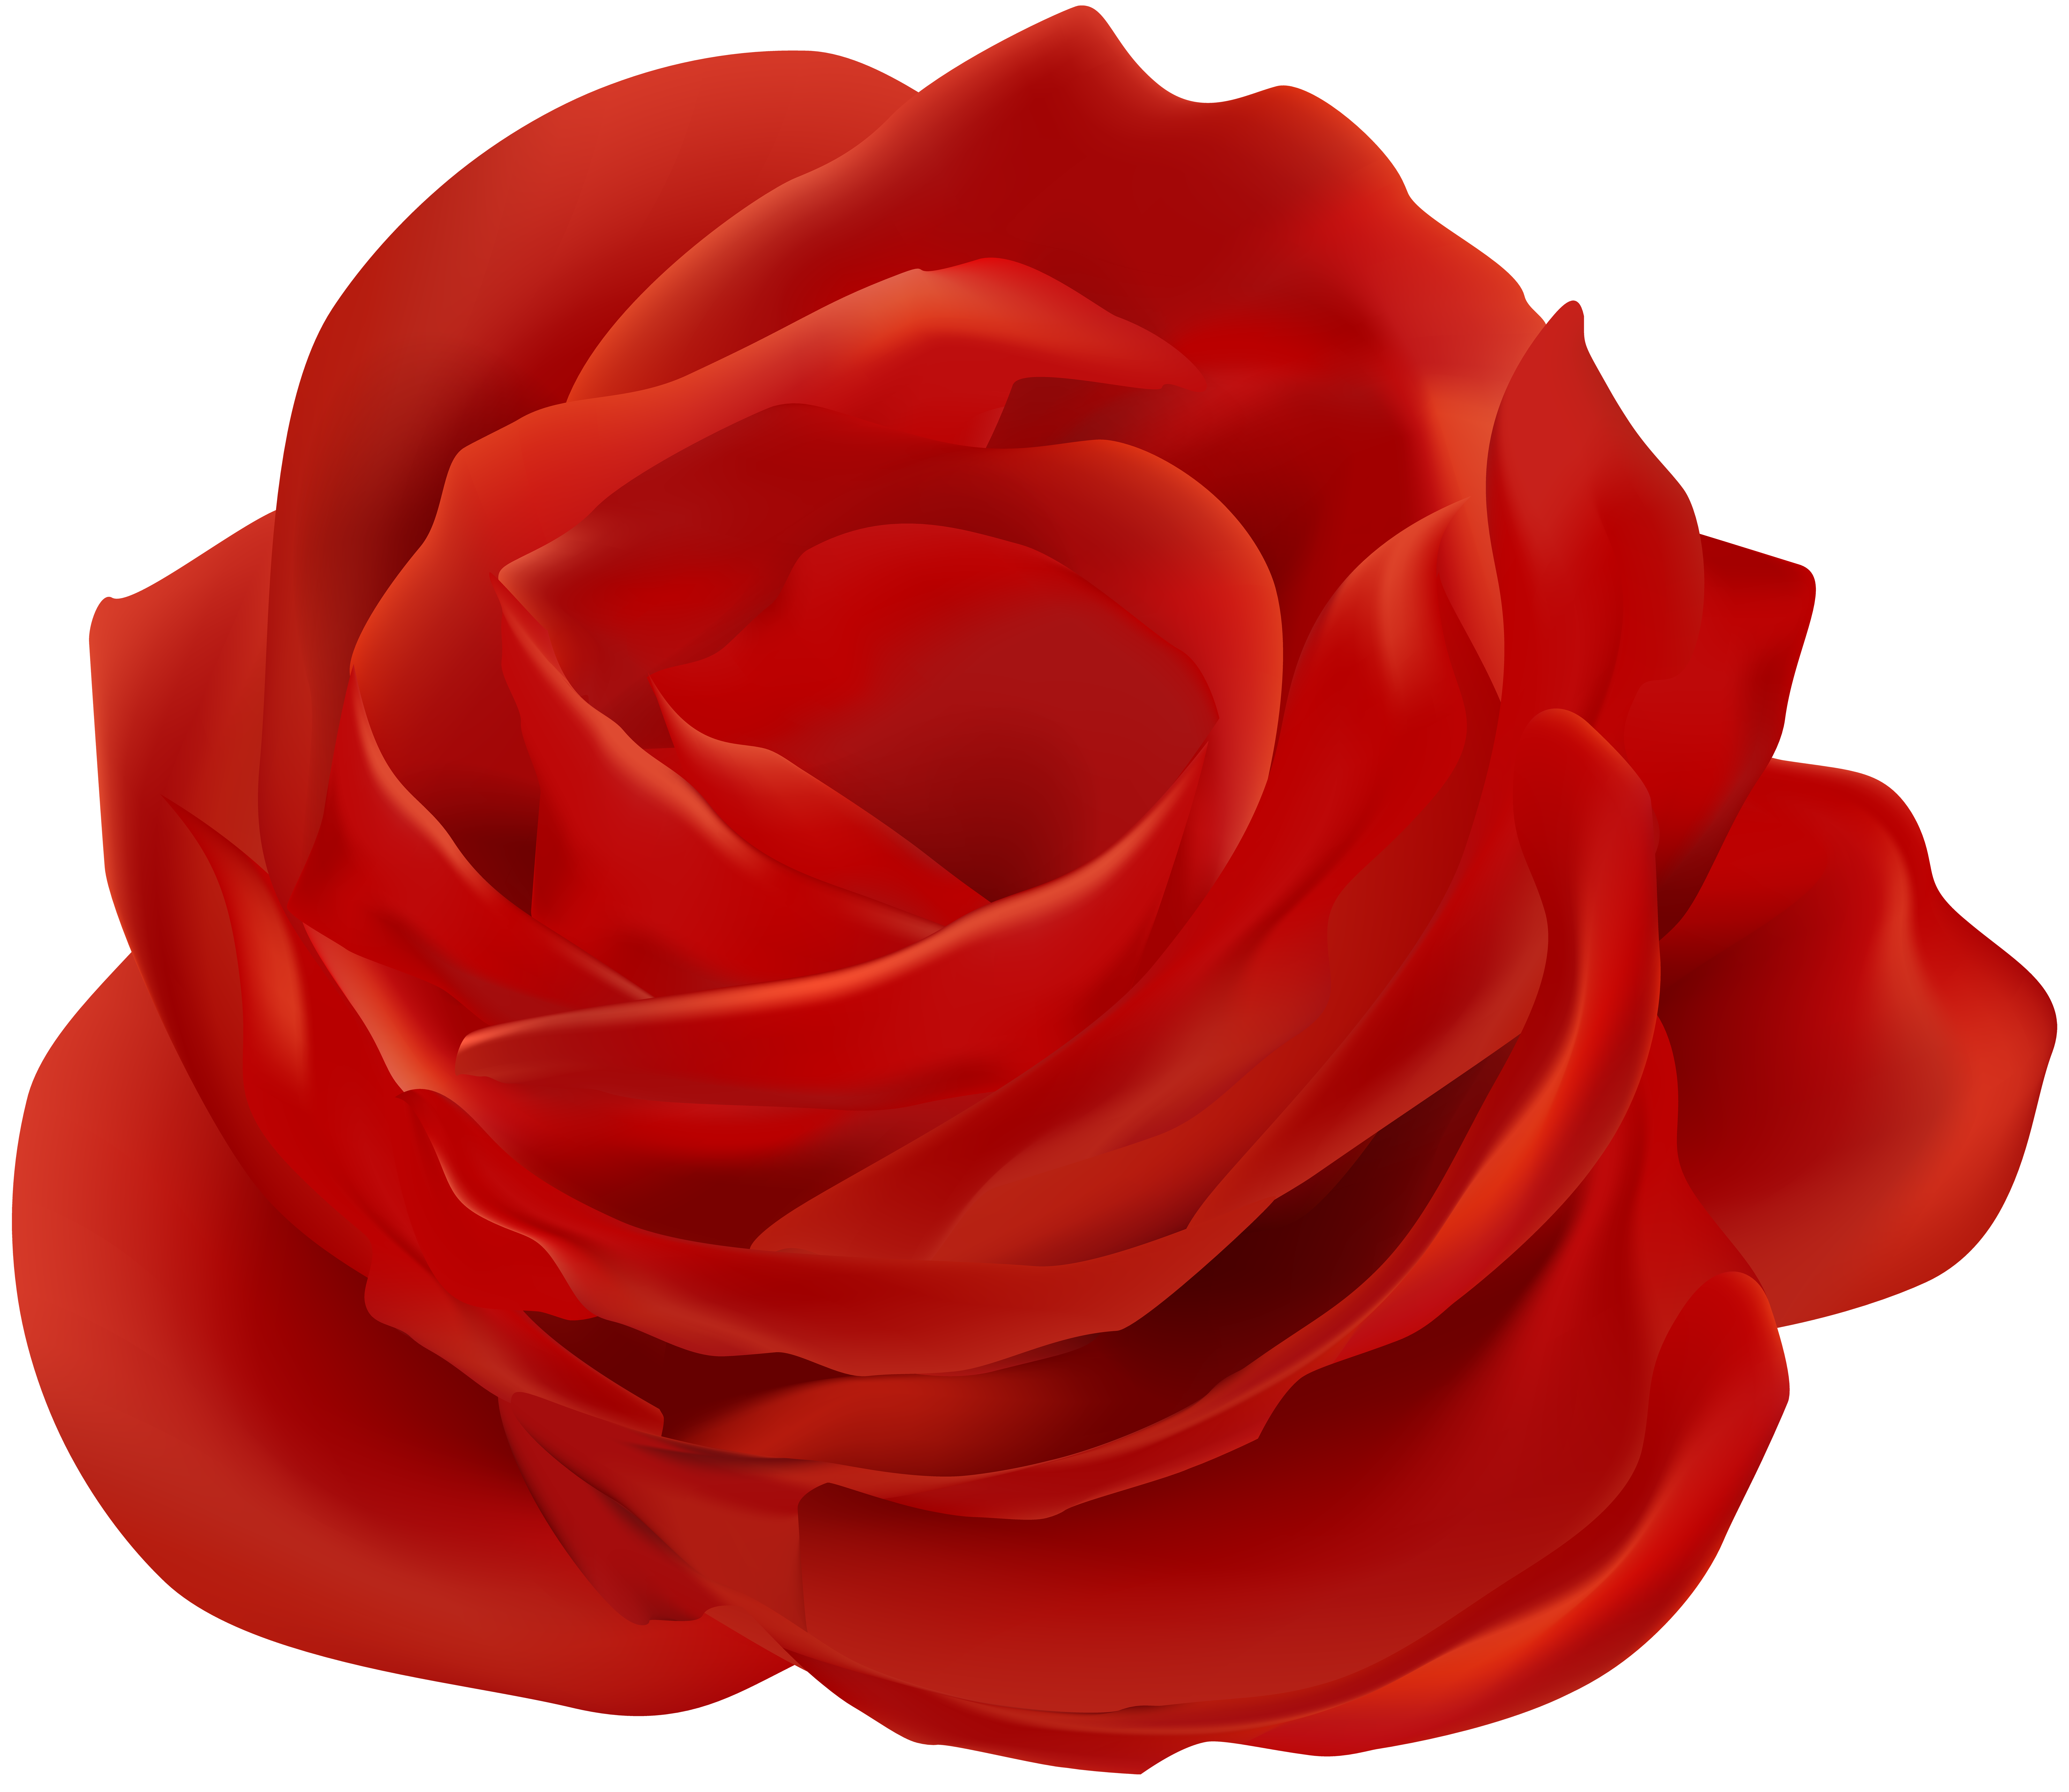 Clipart of rose flower royalty free library Red Rose Flower PNG Clip Art Image | Gallery Yopriceville - High ... royalty free library